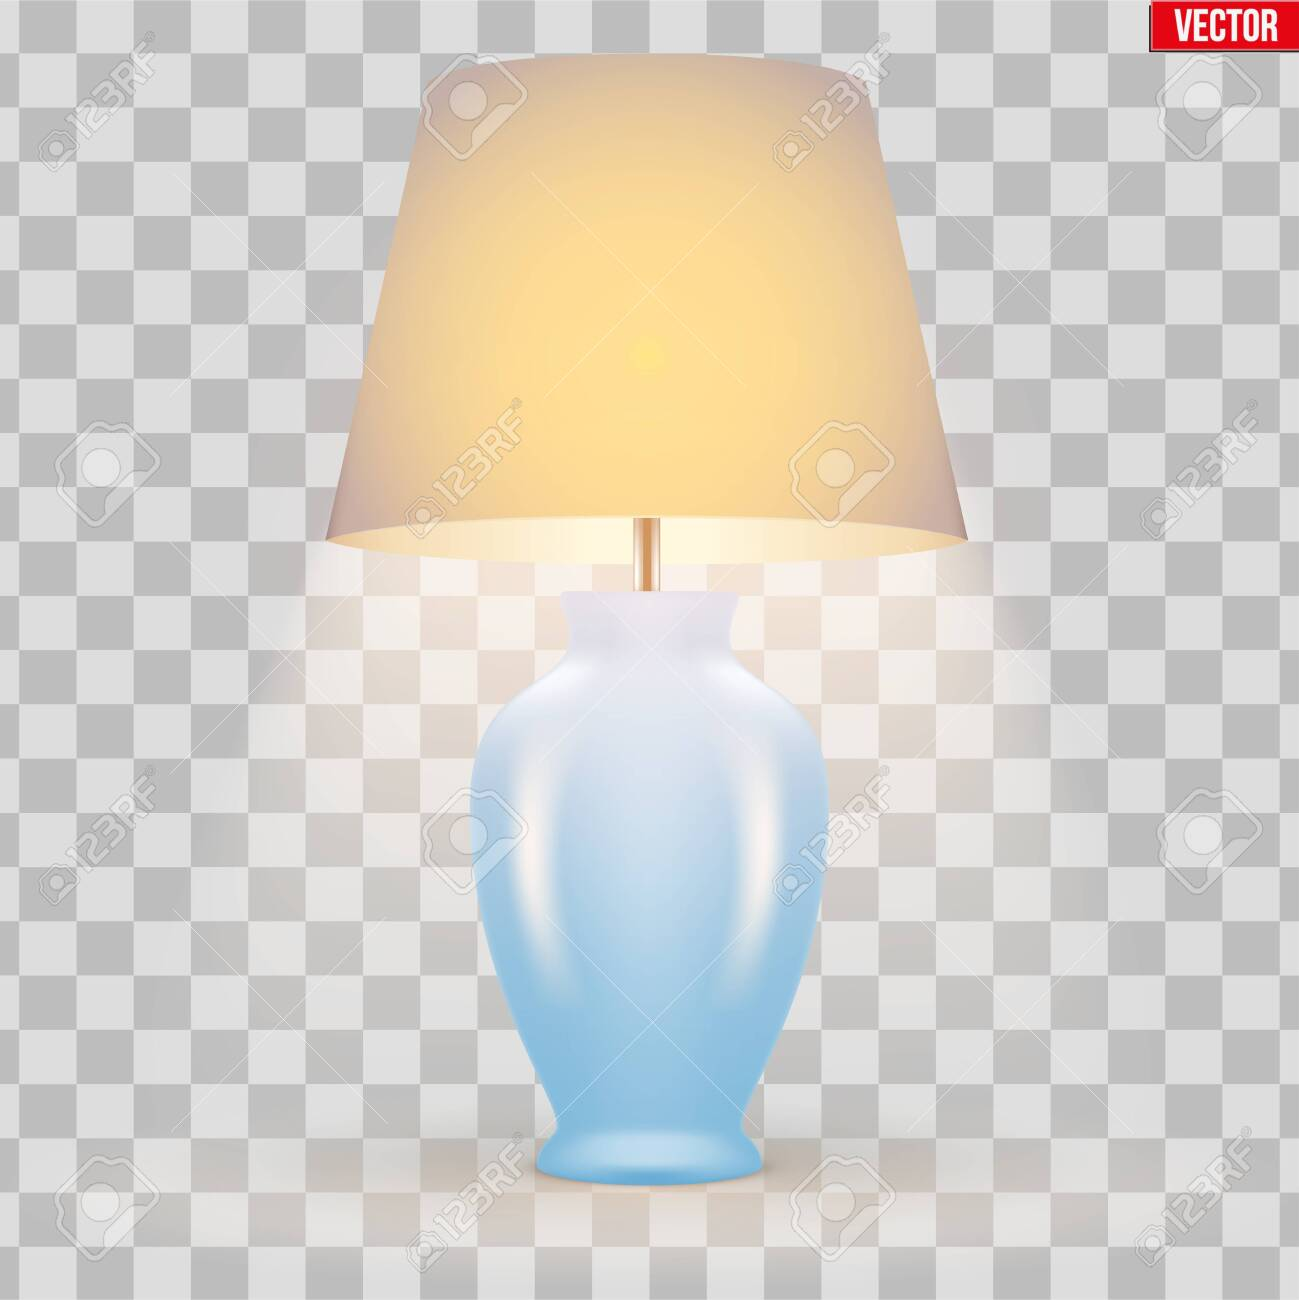 Classic Decorative Table Lamp Sample Model With Bowl And Silk Royalty Free Cliparts Vectors And Stock Illustration Image 121663789